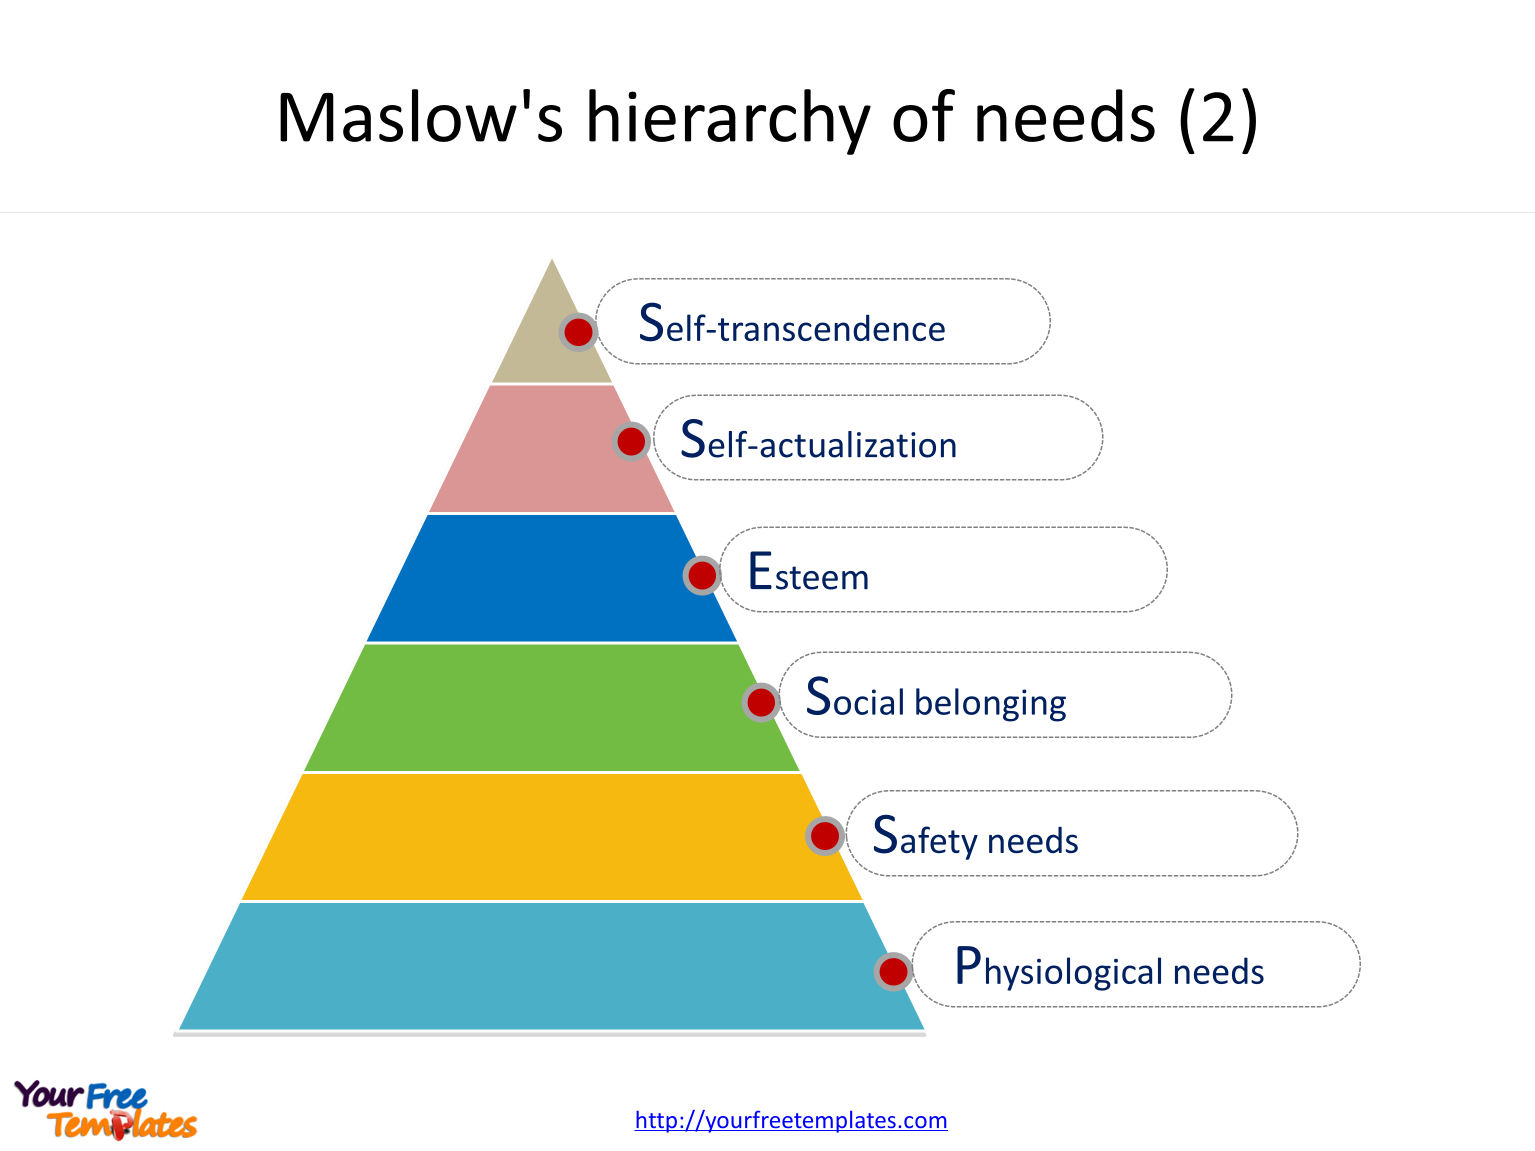 Maslow's hierarchy of needs of six levels